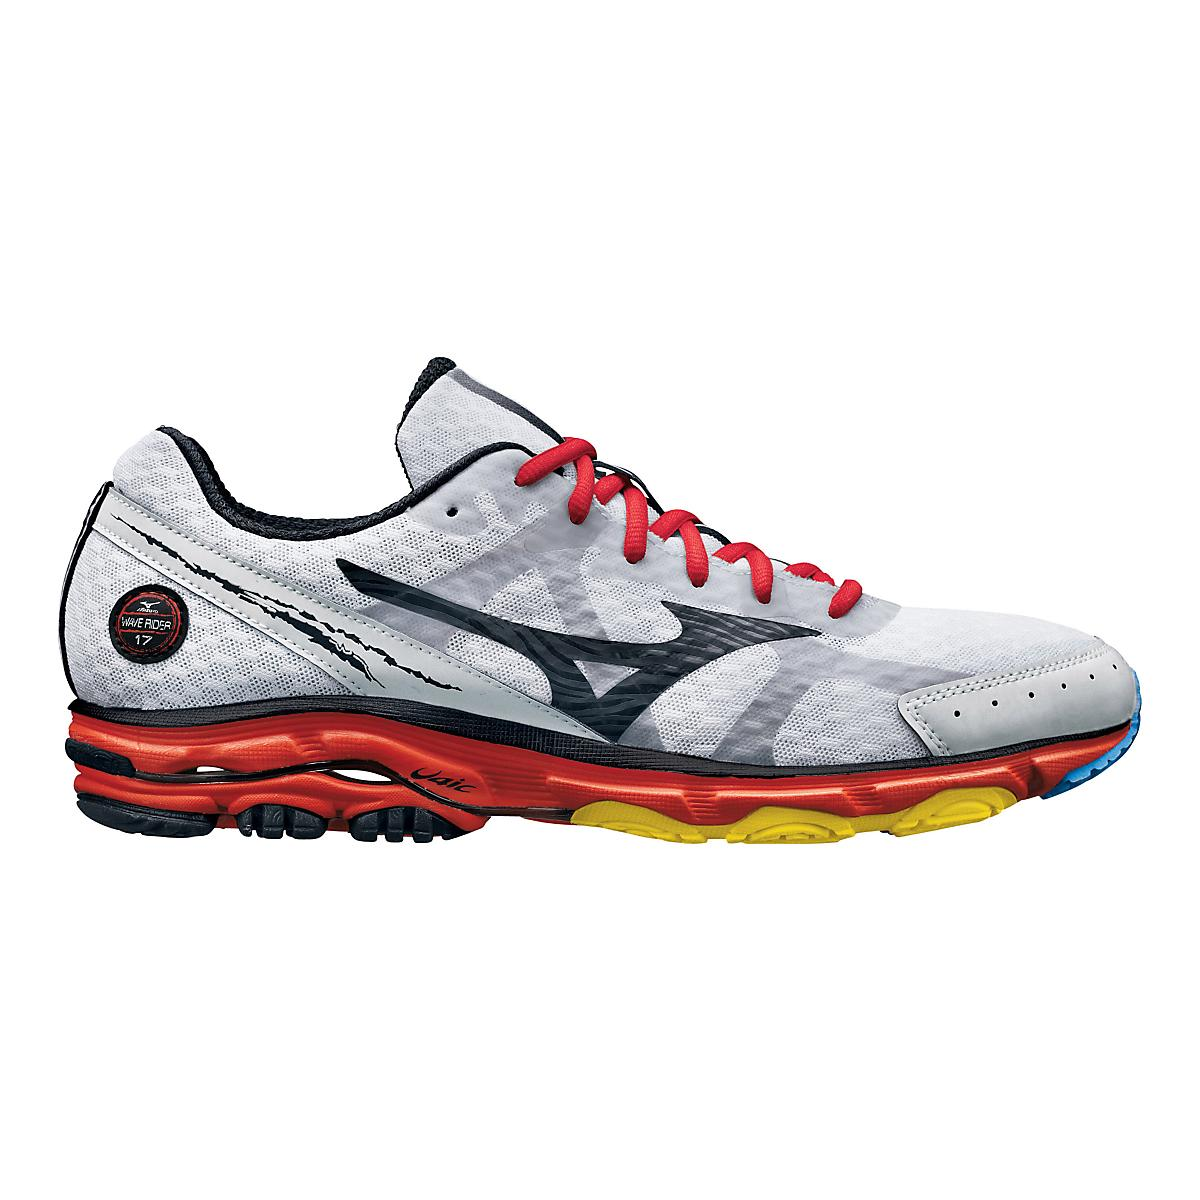 1df960ada8b4 Mens Mizuno Wave Rider 17 Running Shoe at Road Runner Sports